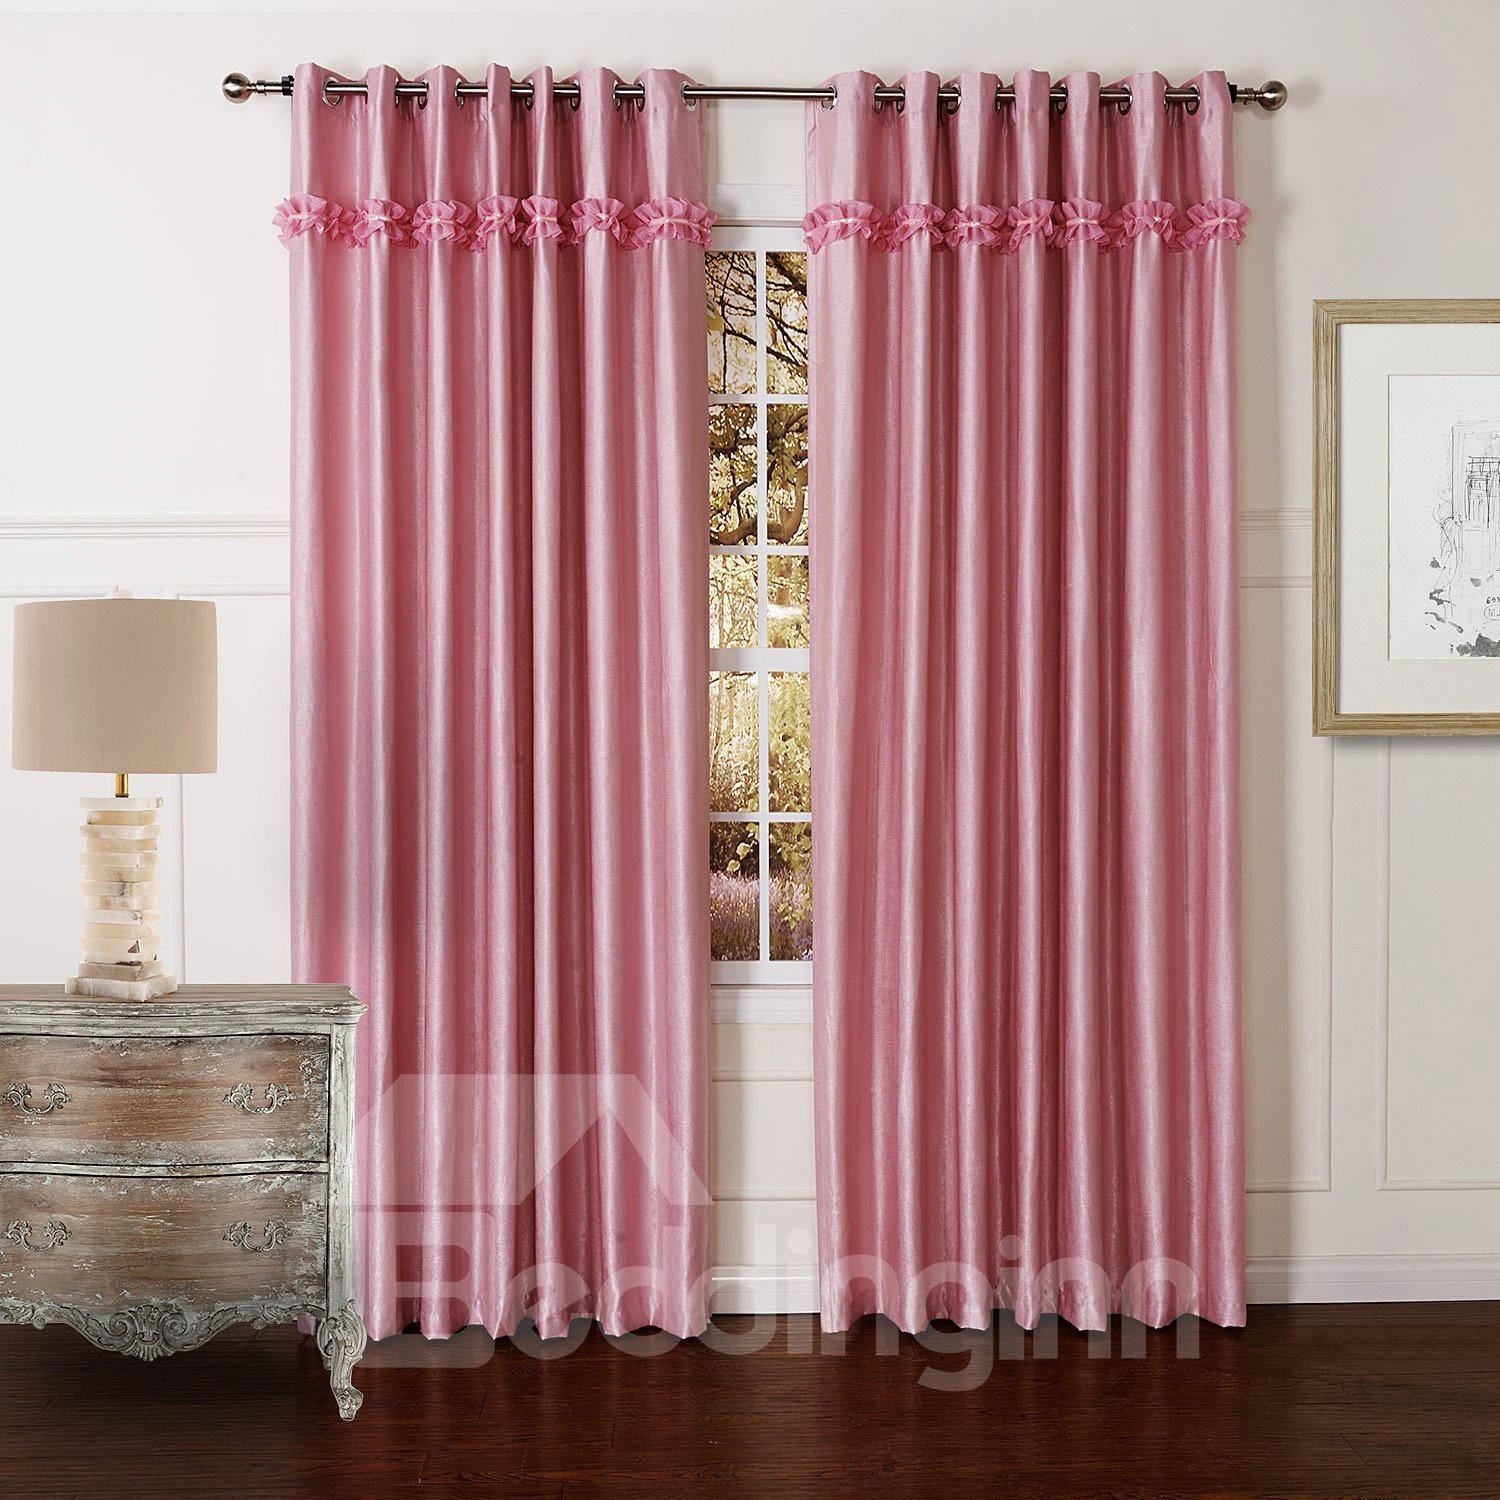 Wonderful High Quality Granular Villus Pretty Custom Curtain